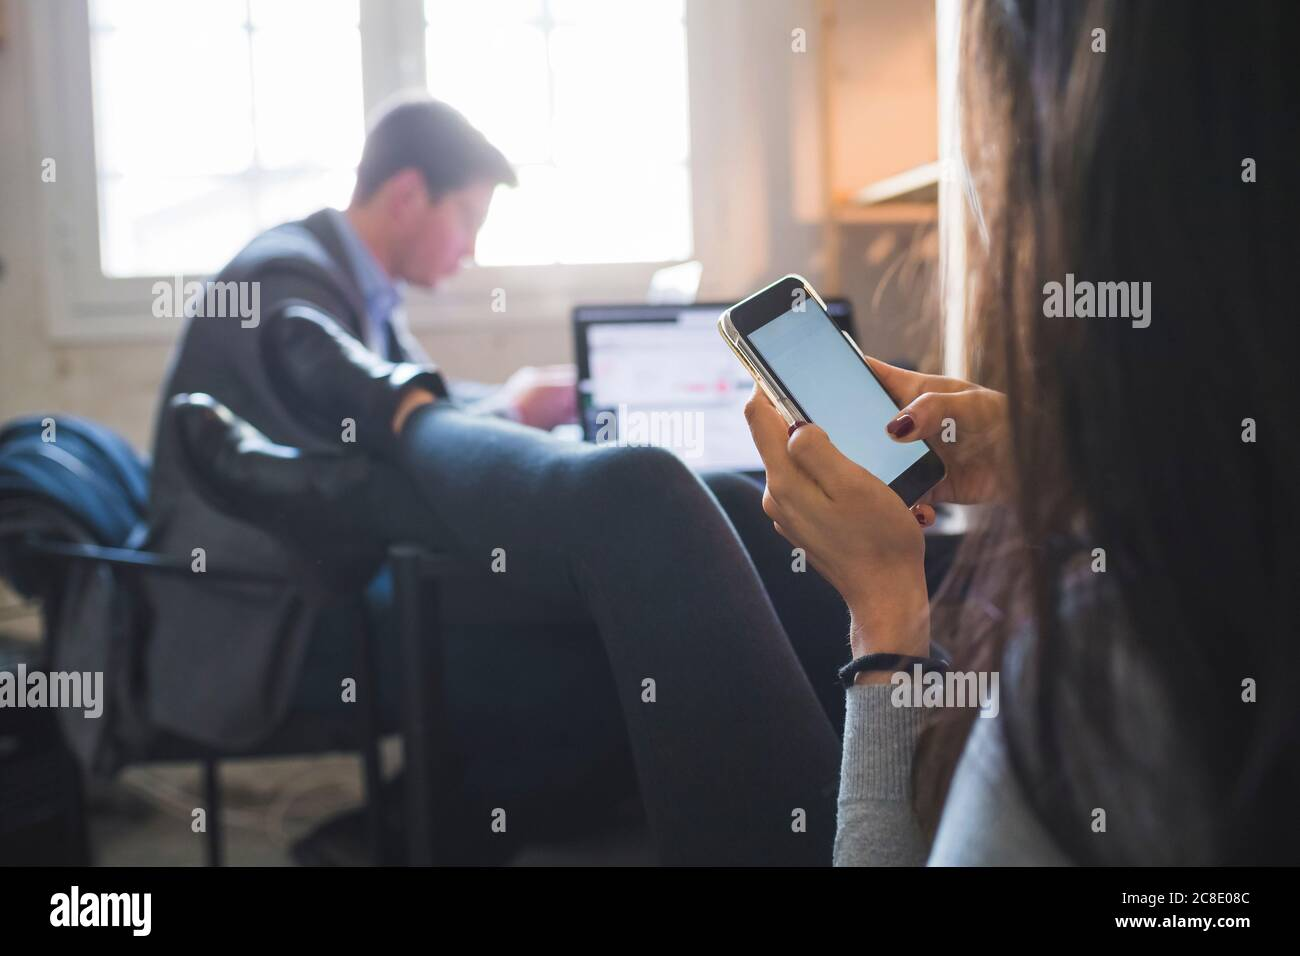 Relaxed woman using smartphone at desk with businessman in background working Stock Photo